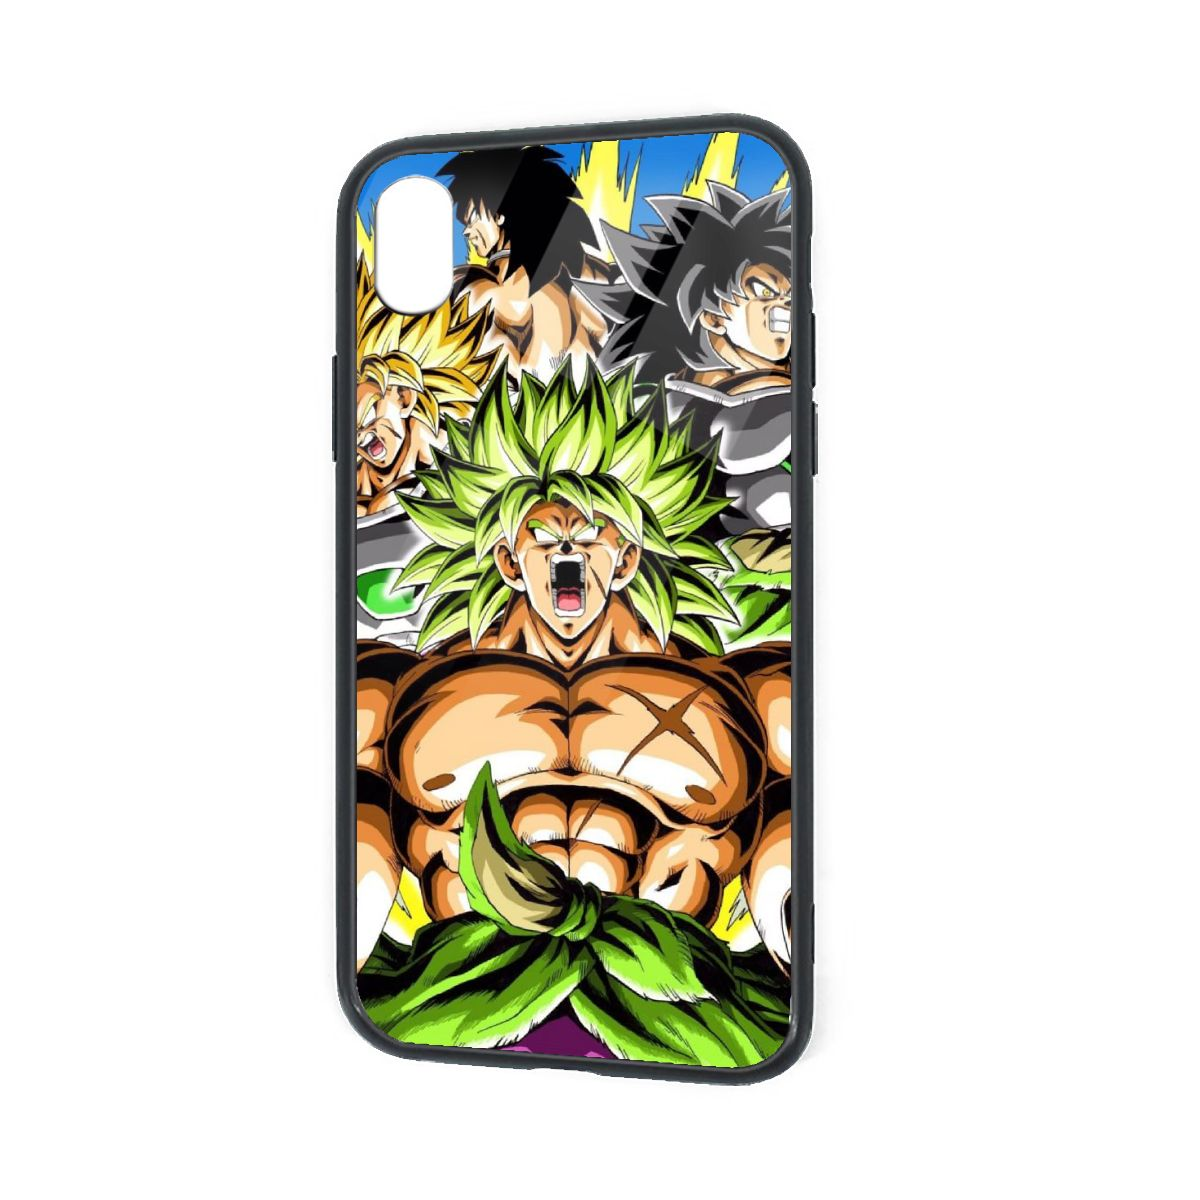 IPhone X XR XS 6 7 8 Plus Hybrid Soft Grip Clear Back Panel Ultra-Thin [Slim Fit] Cover Legend Broly